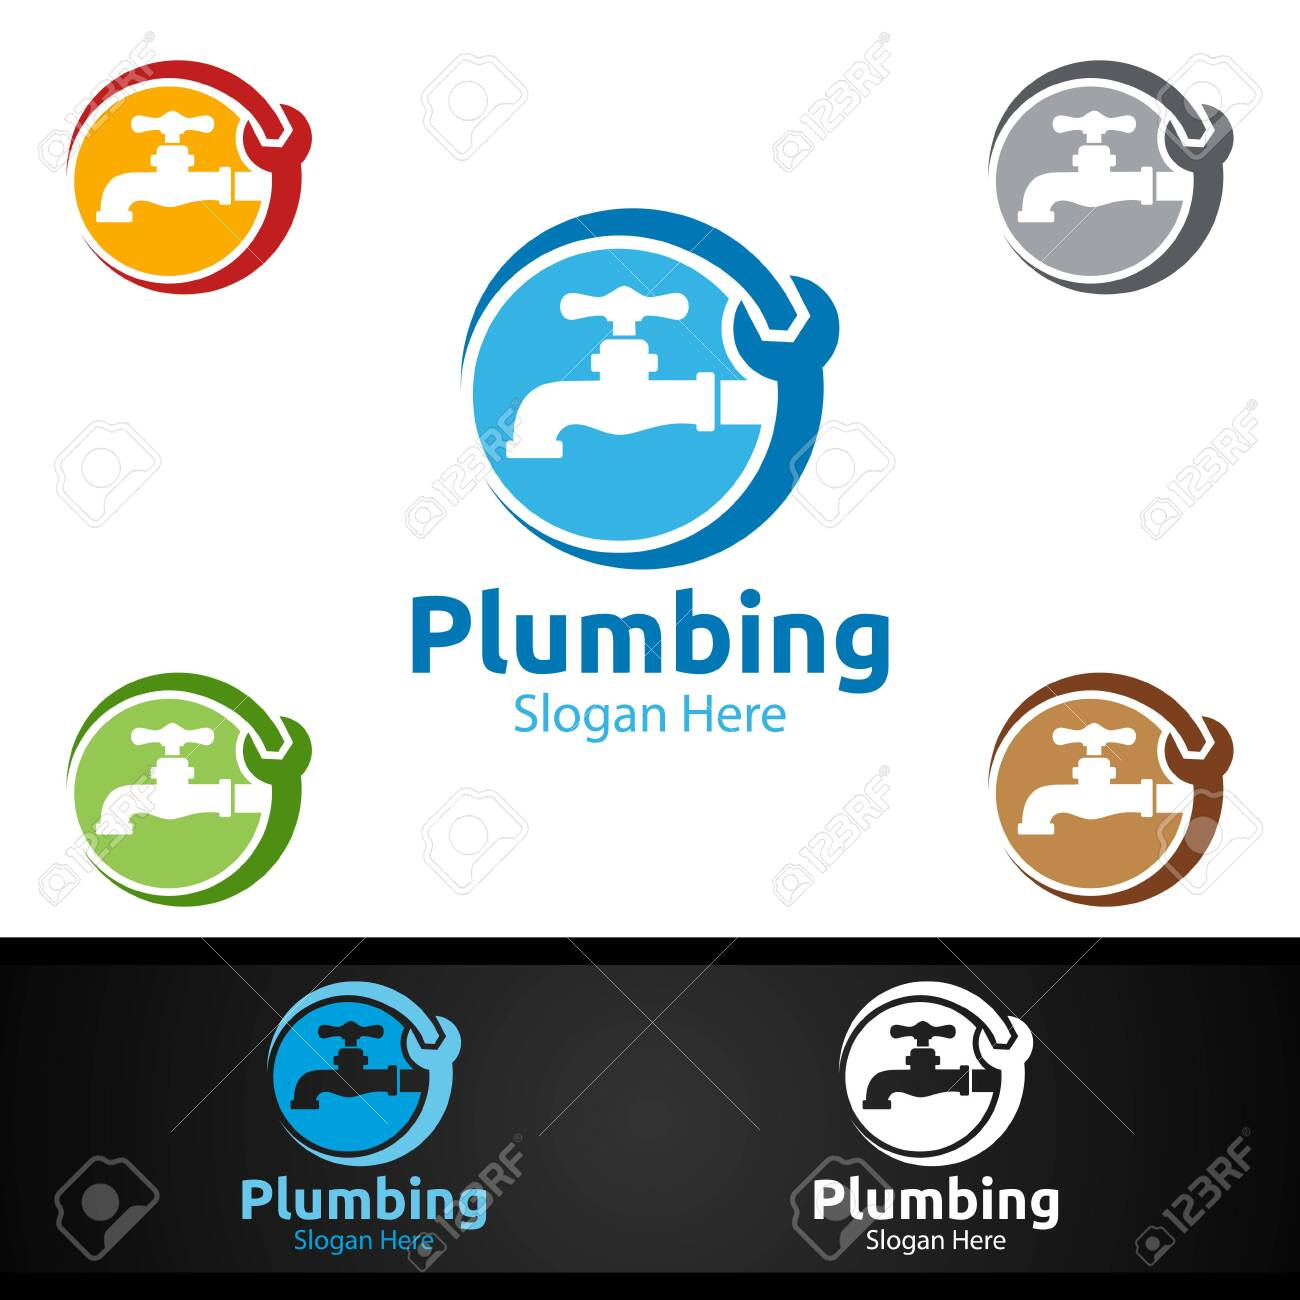 Plumbing with Water and Fix Home Concept Design - 154160793